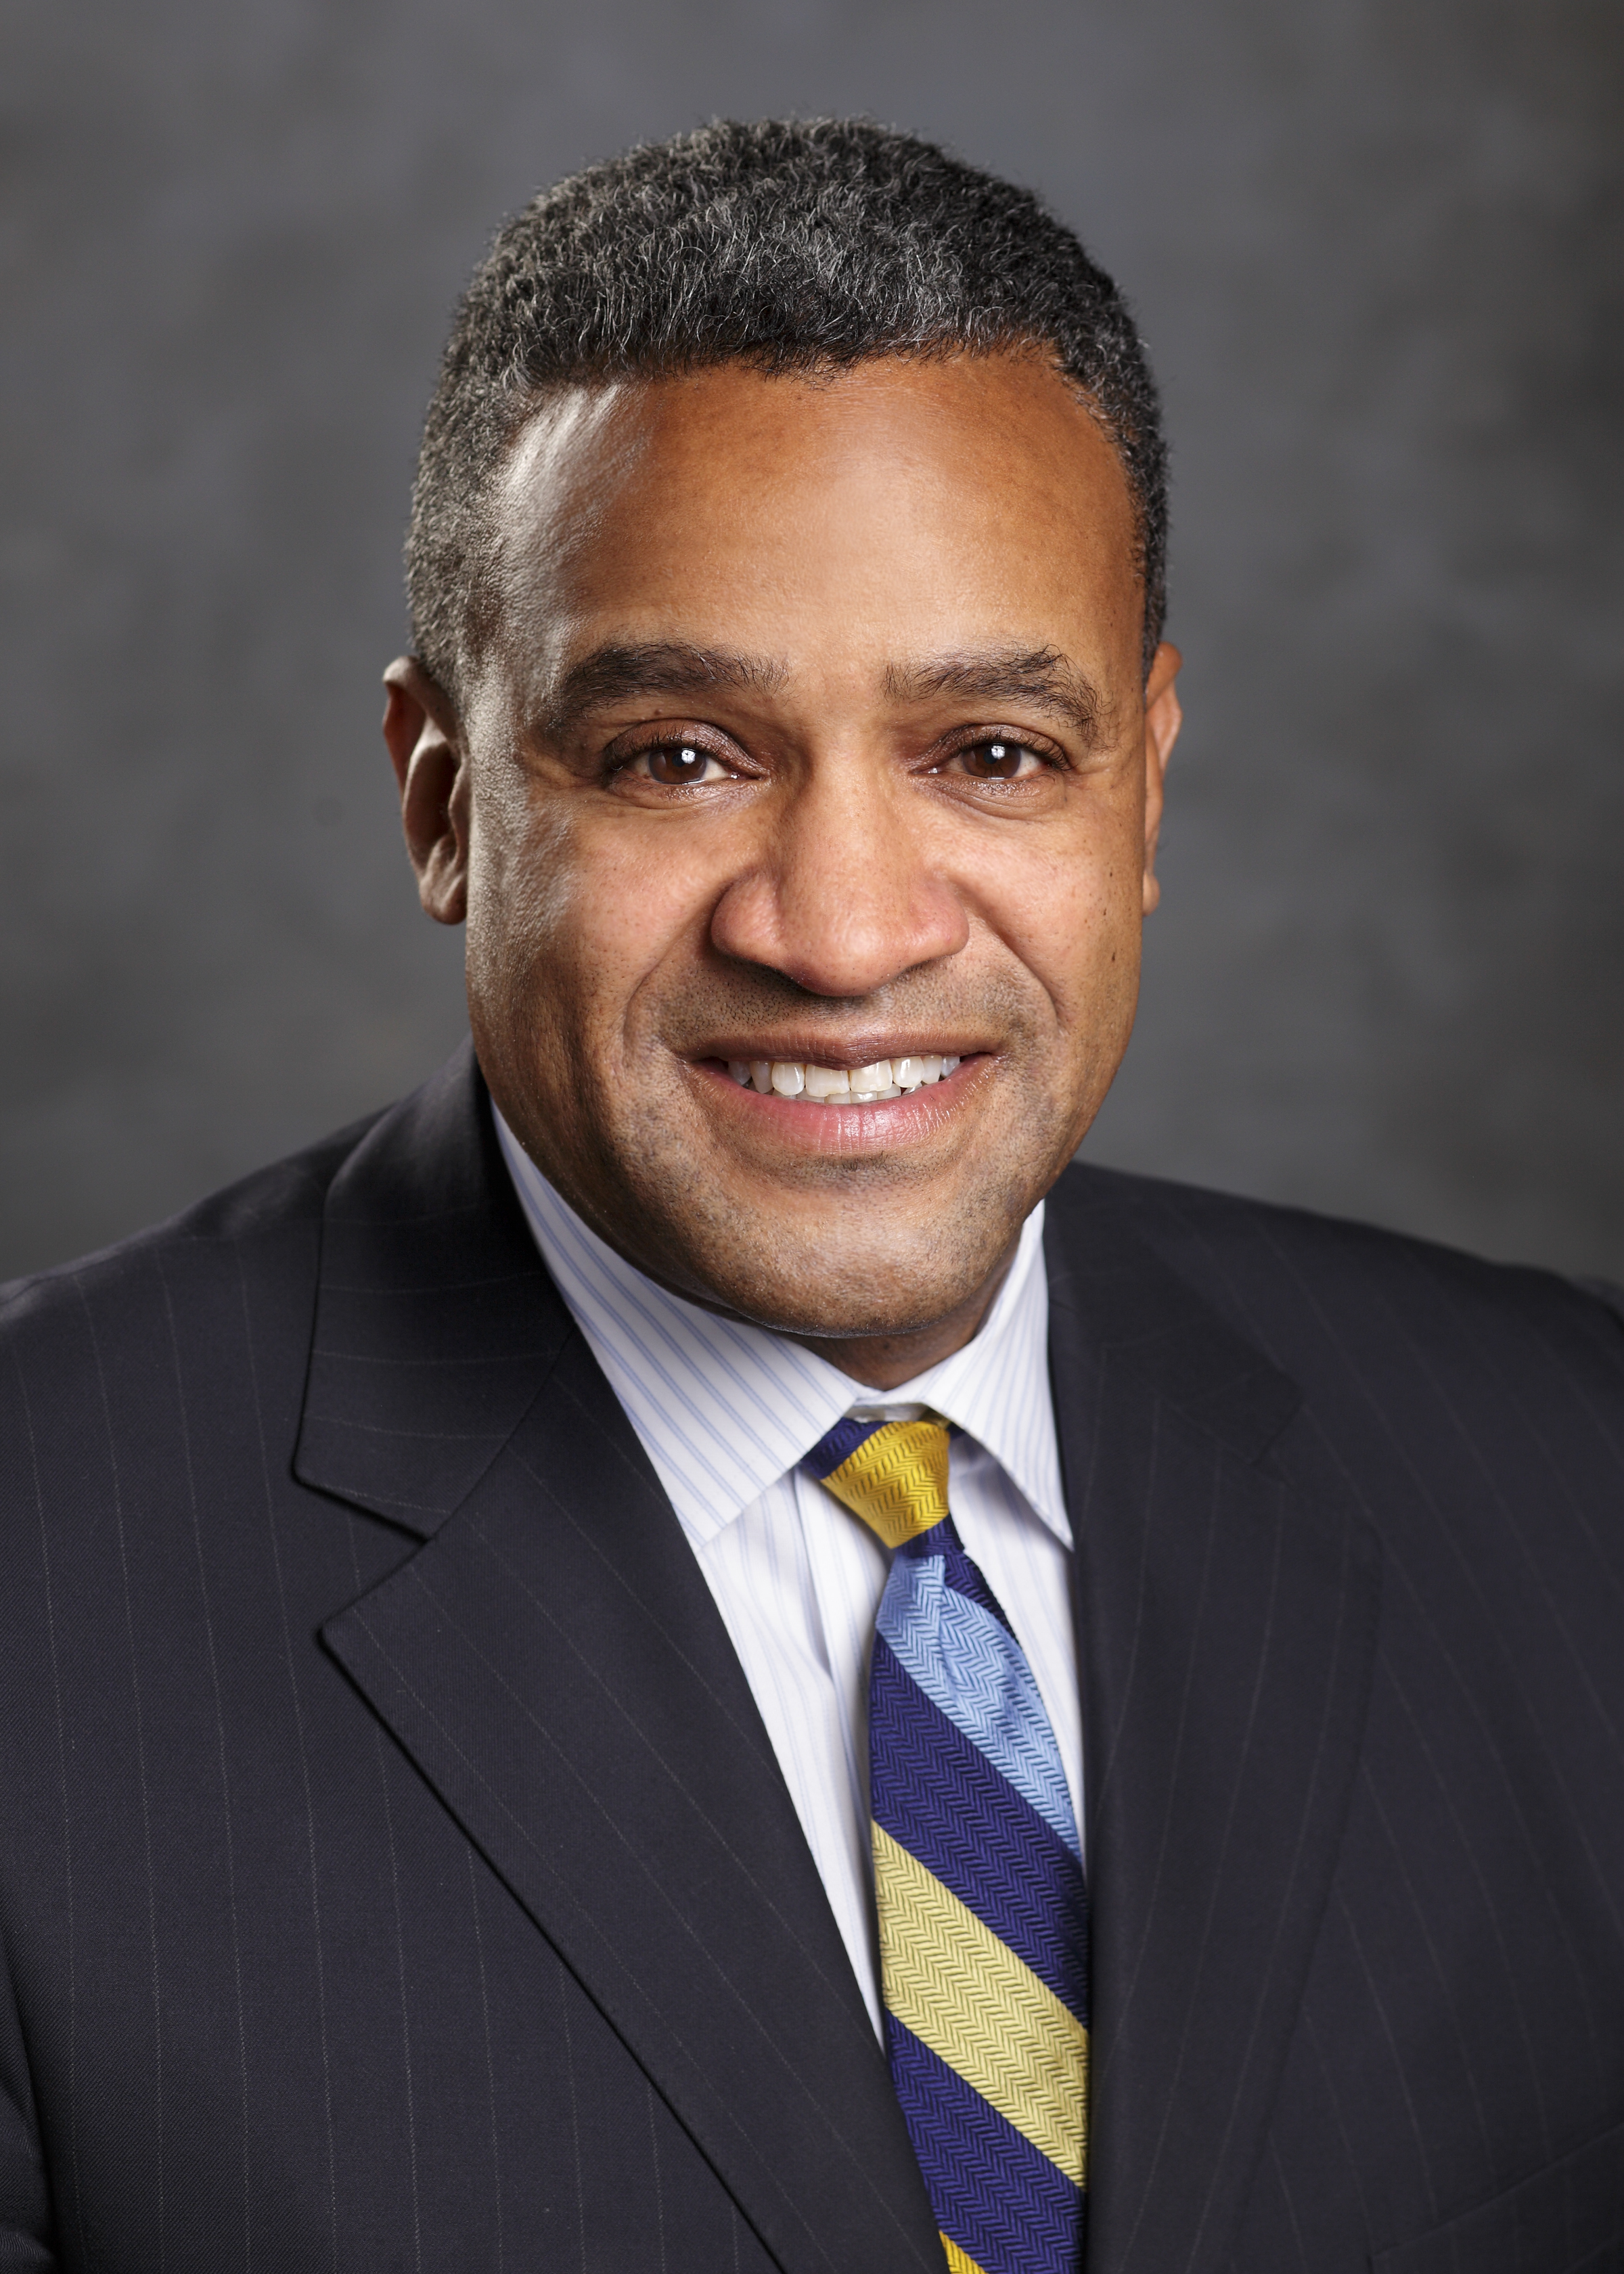 Paul Quick, Senior Vice President & General Manager for Frontier Communications in Connecticut (Photo: Business Wire)